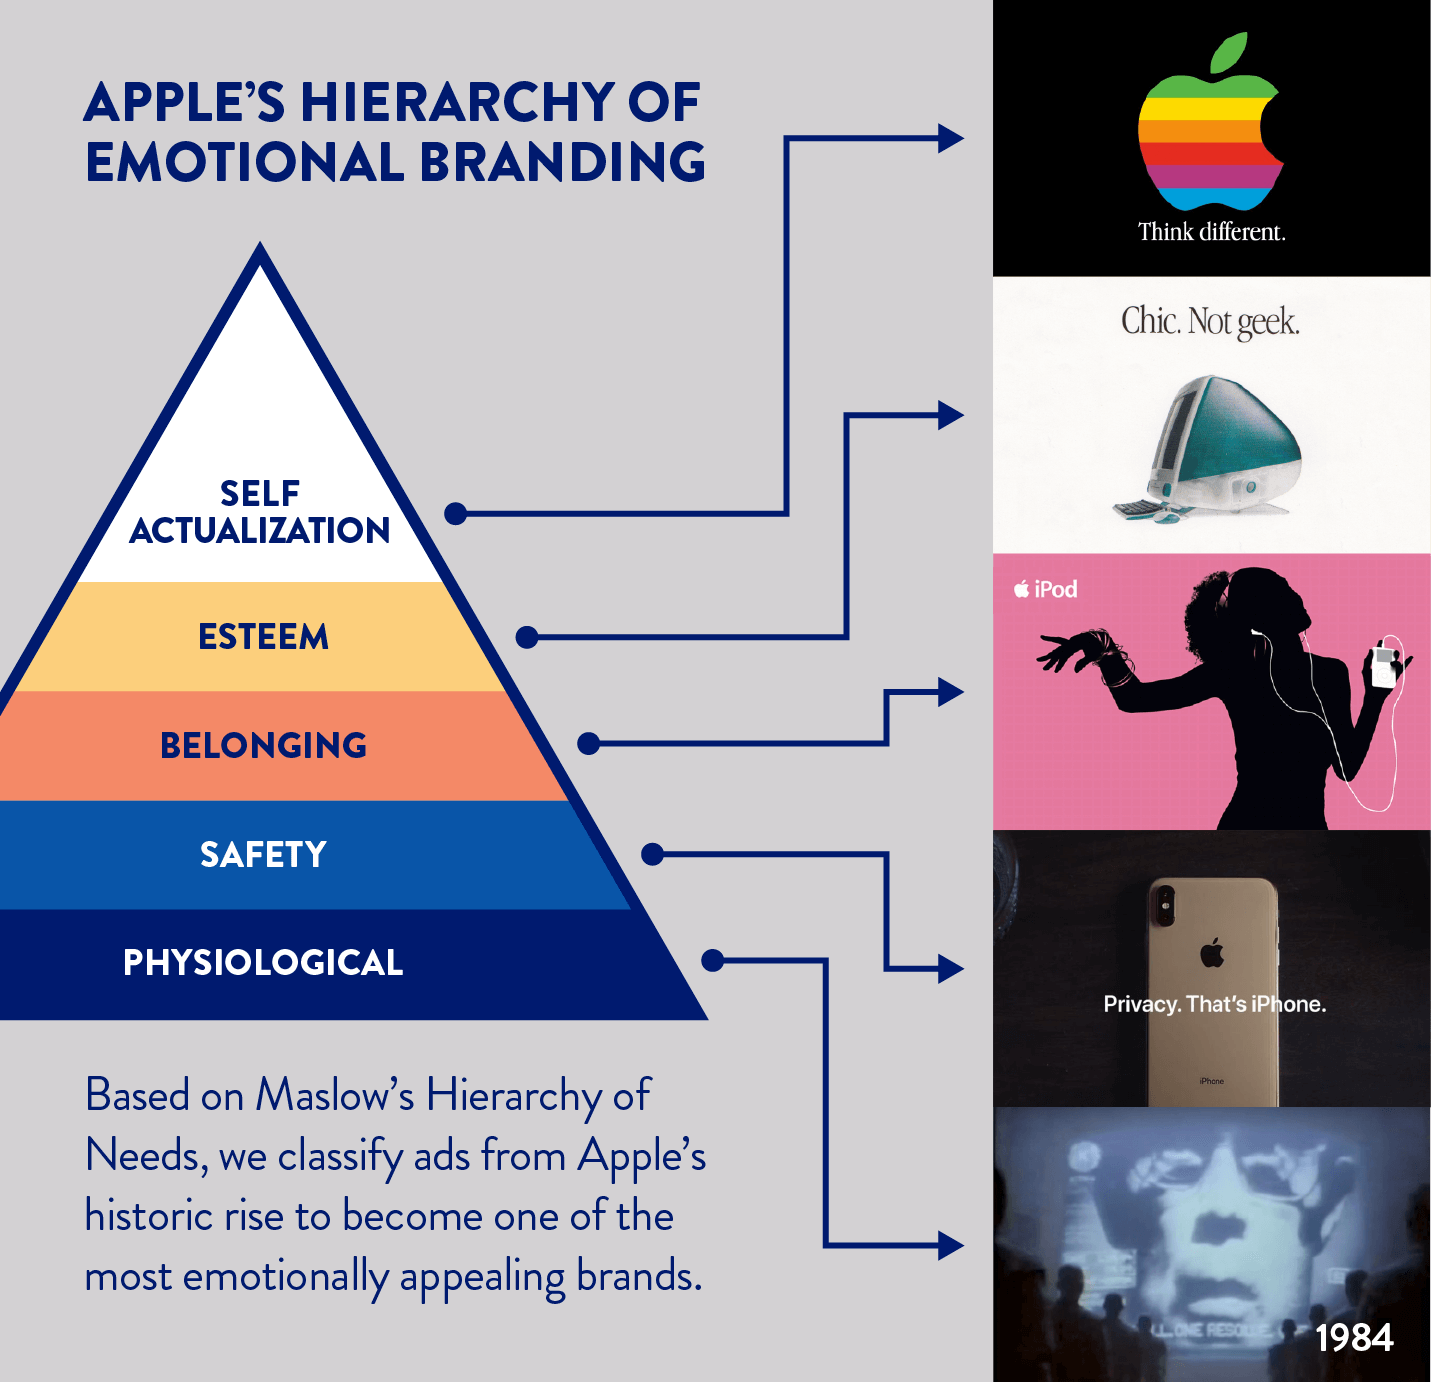 Apple advertisements ranked on Maslow's hierarchy of needs.